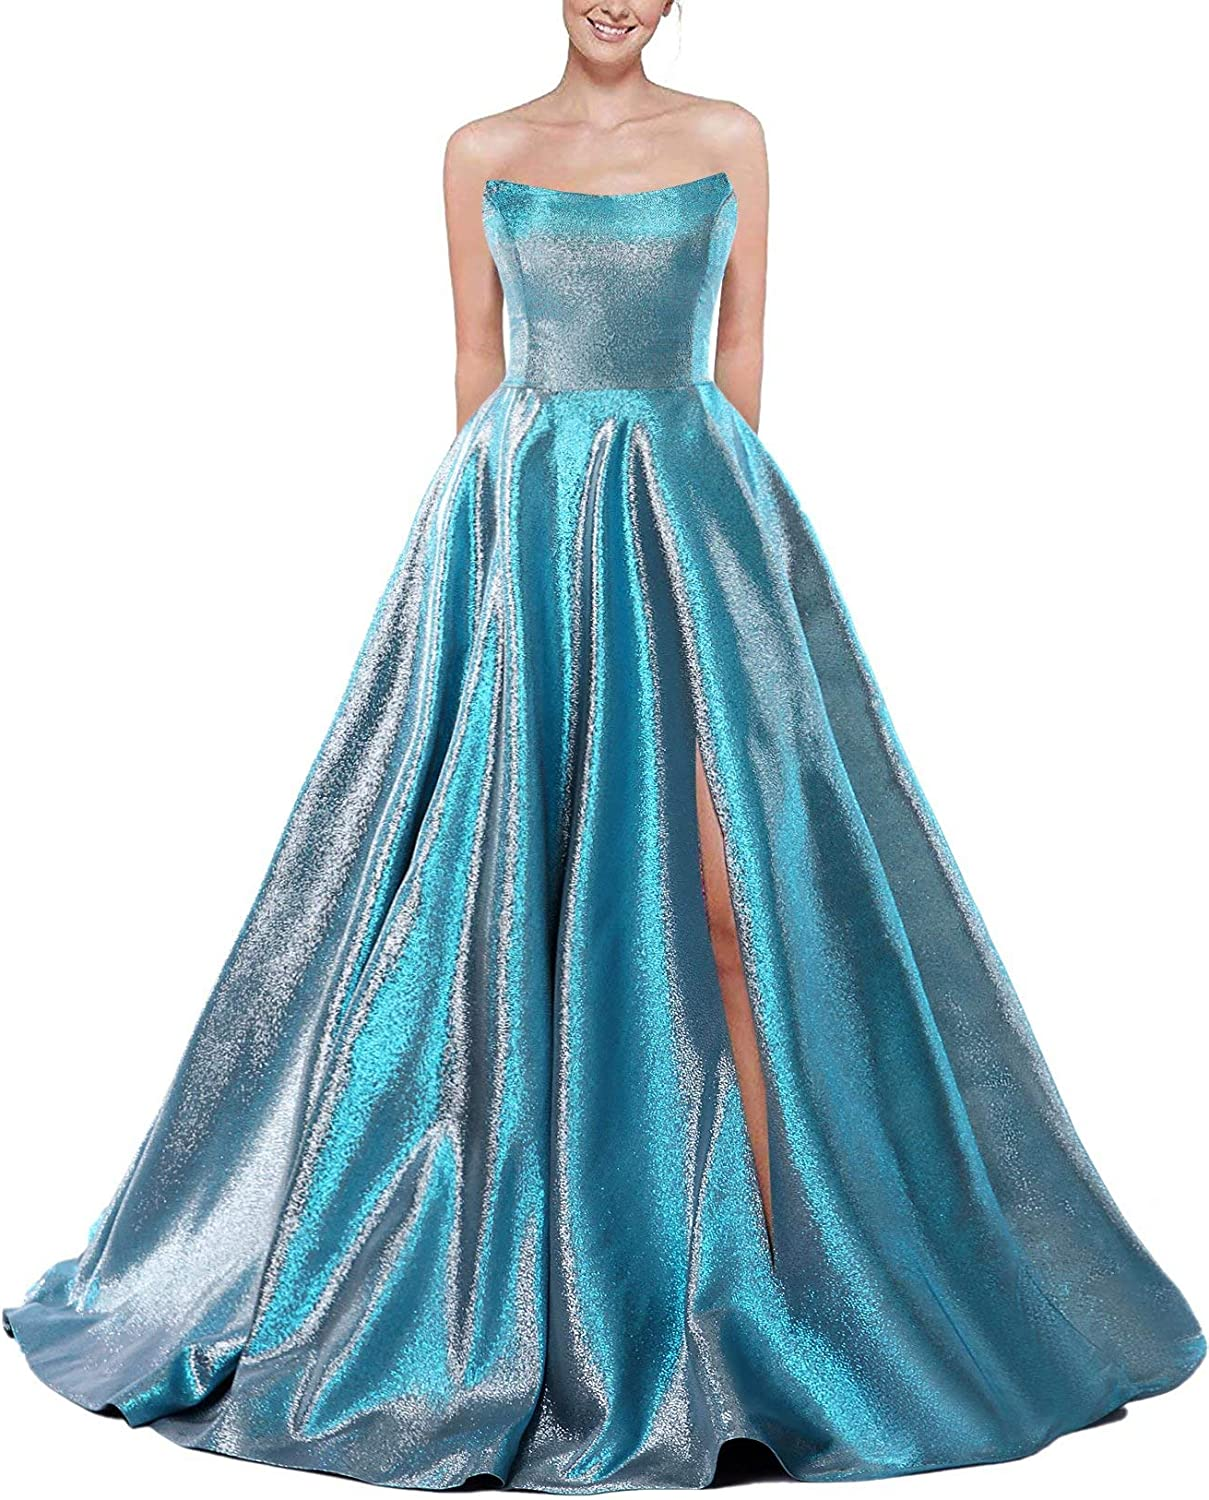 P PROMSTAR Strapless Prom Dresses 2021 Long Satin A Line Ball Gown with Slit for Women